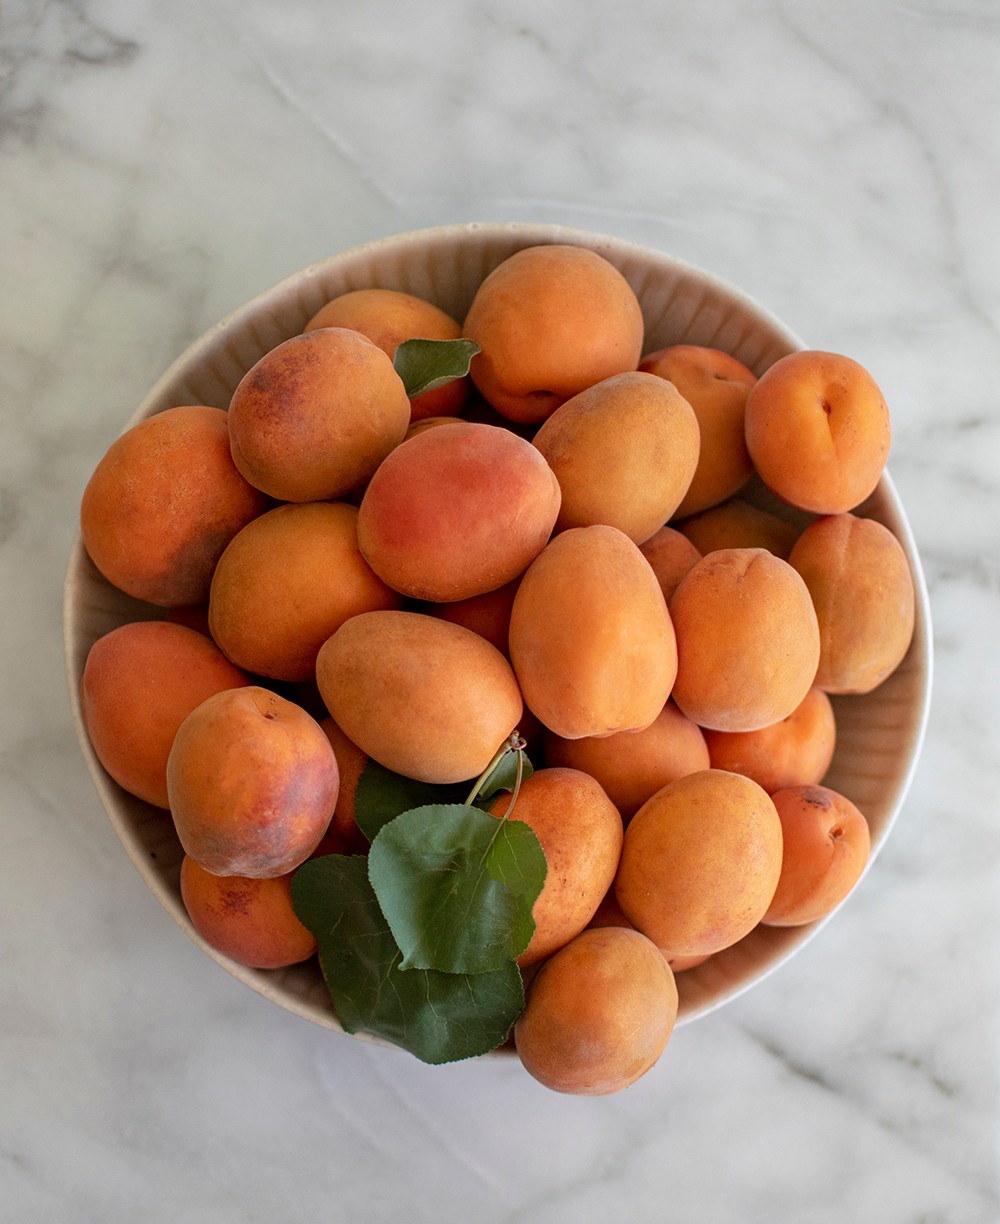 Simple and easy recipe for mini pies, honey apricot, fresh apricots, honey apricot pie, mini pies, organic pies, pies with glaze, glazed, high altitude pies #organic #apricot #freshpies #minipies #highaltitudebaking